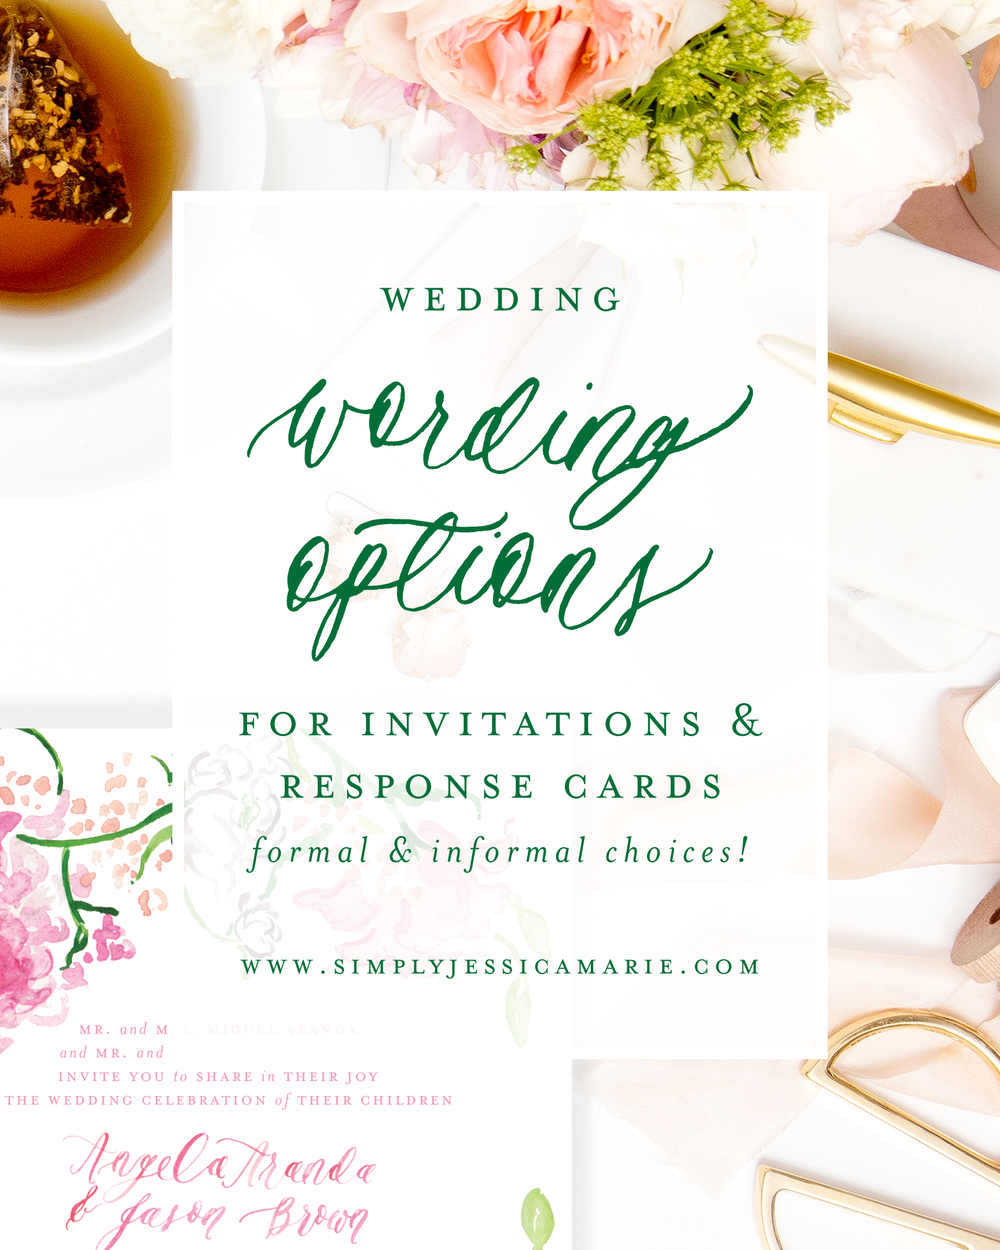 Wedding Invitation Wording: Wording Options For Wedding Invitations